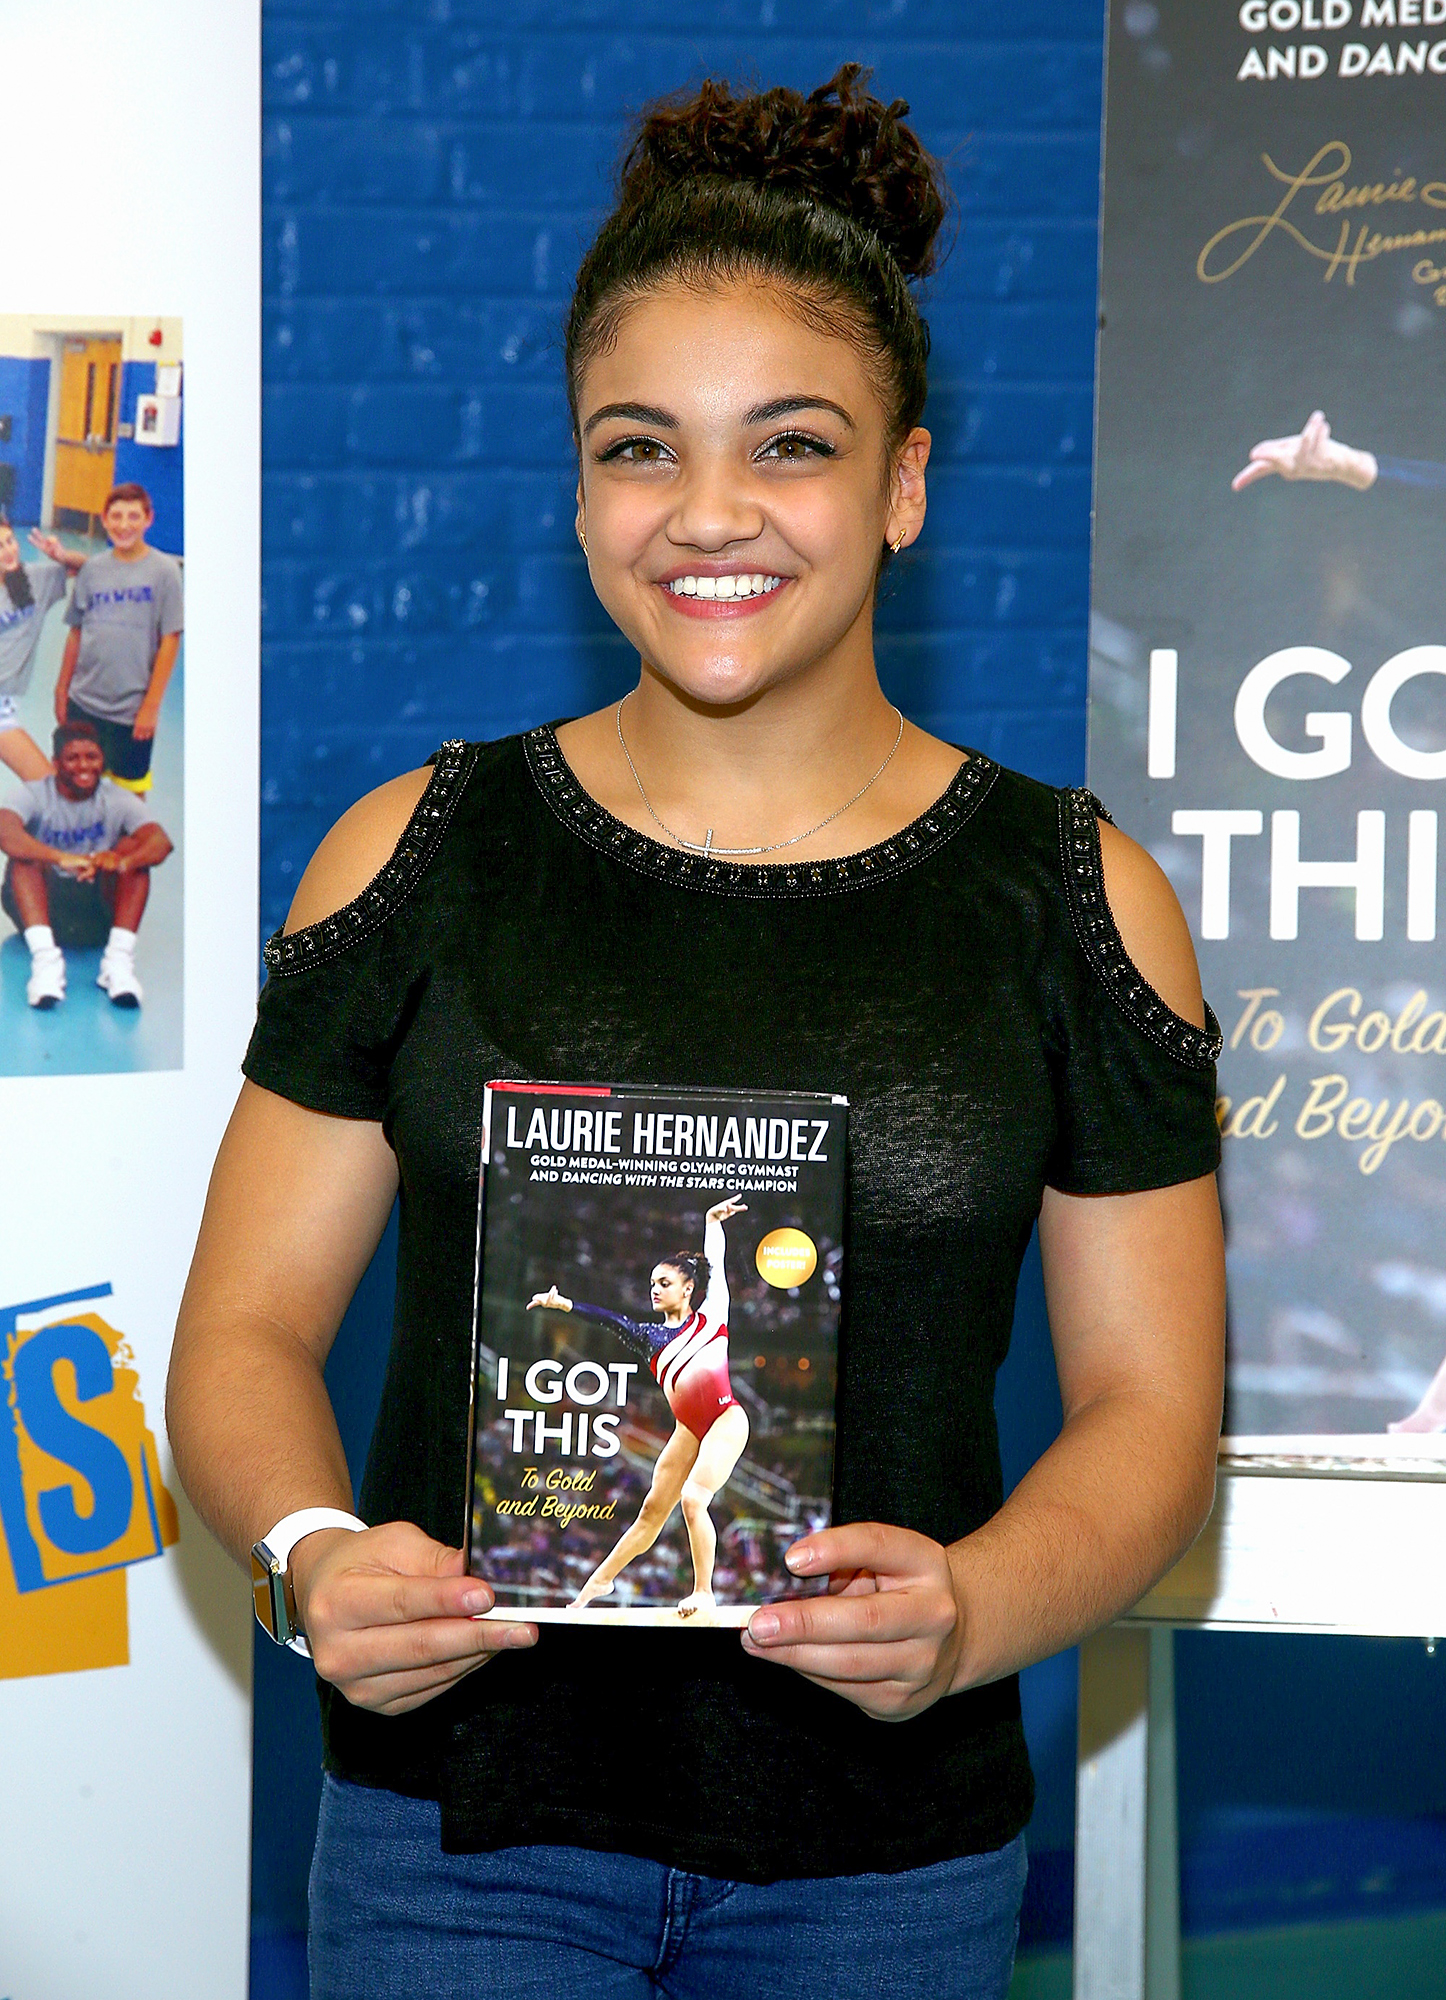 """Laurie Hernandez Signs Copies Of Her New Book """"I Got This: To Gold And Beyond"""""""